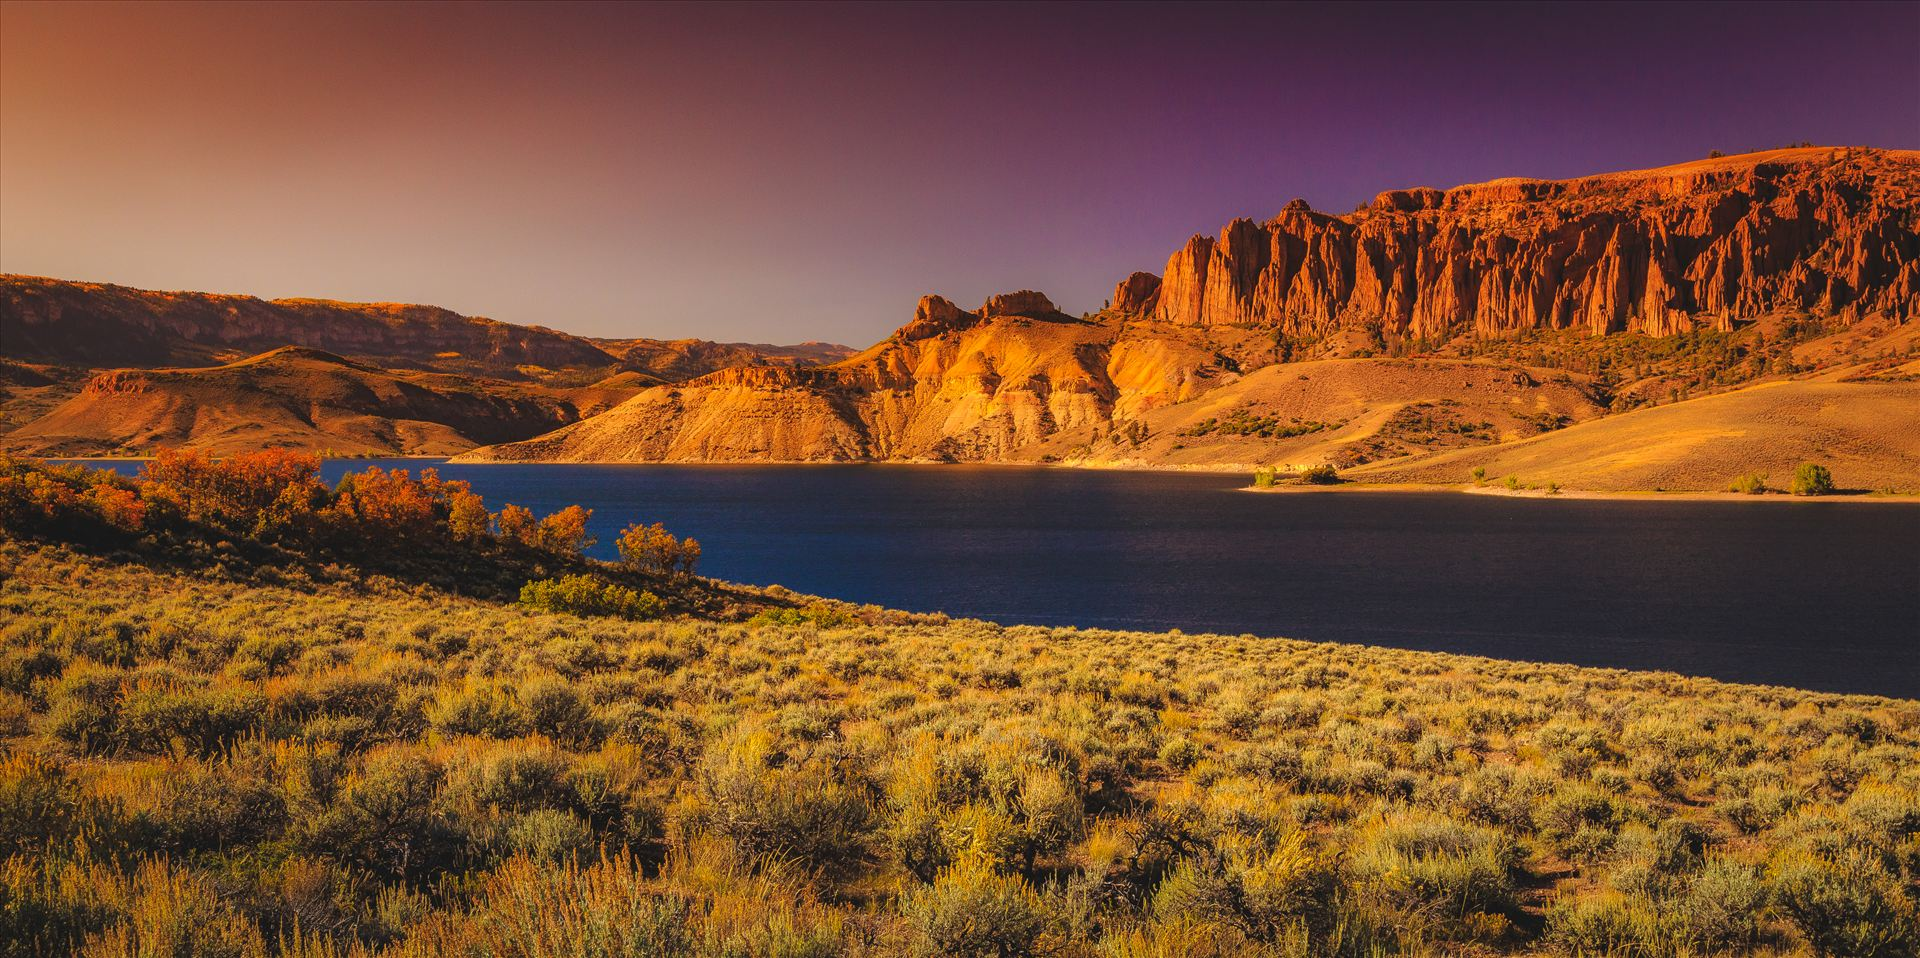 Dillon Pinnacles and Gunnison River (toned) - Another version of the Dillon Pinnacles tower over the beautiful Gunnison River, near Gunnison Colorado. by D Scott Smith